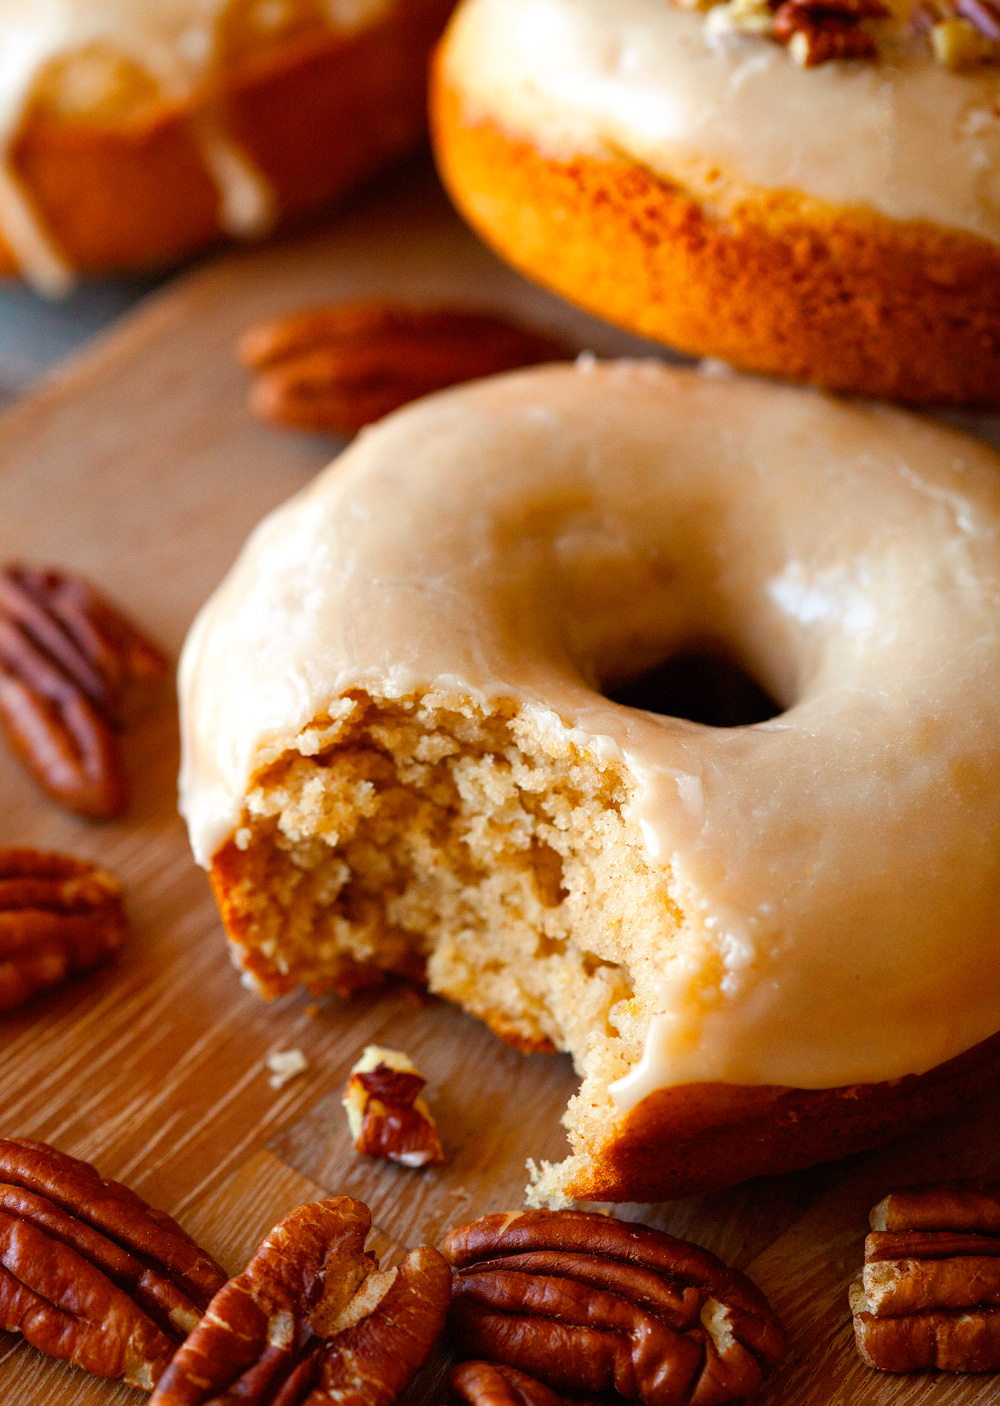 Maple Glazed Donuts